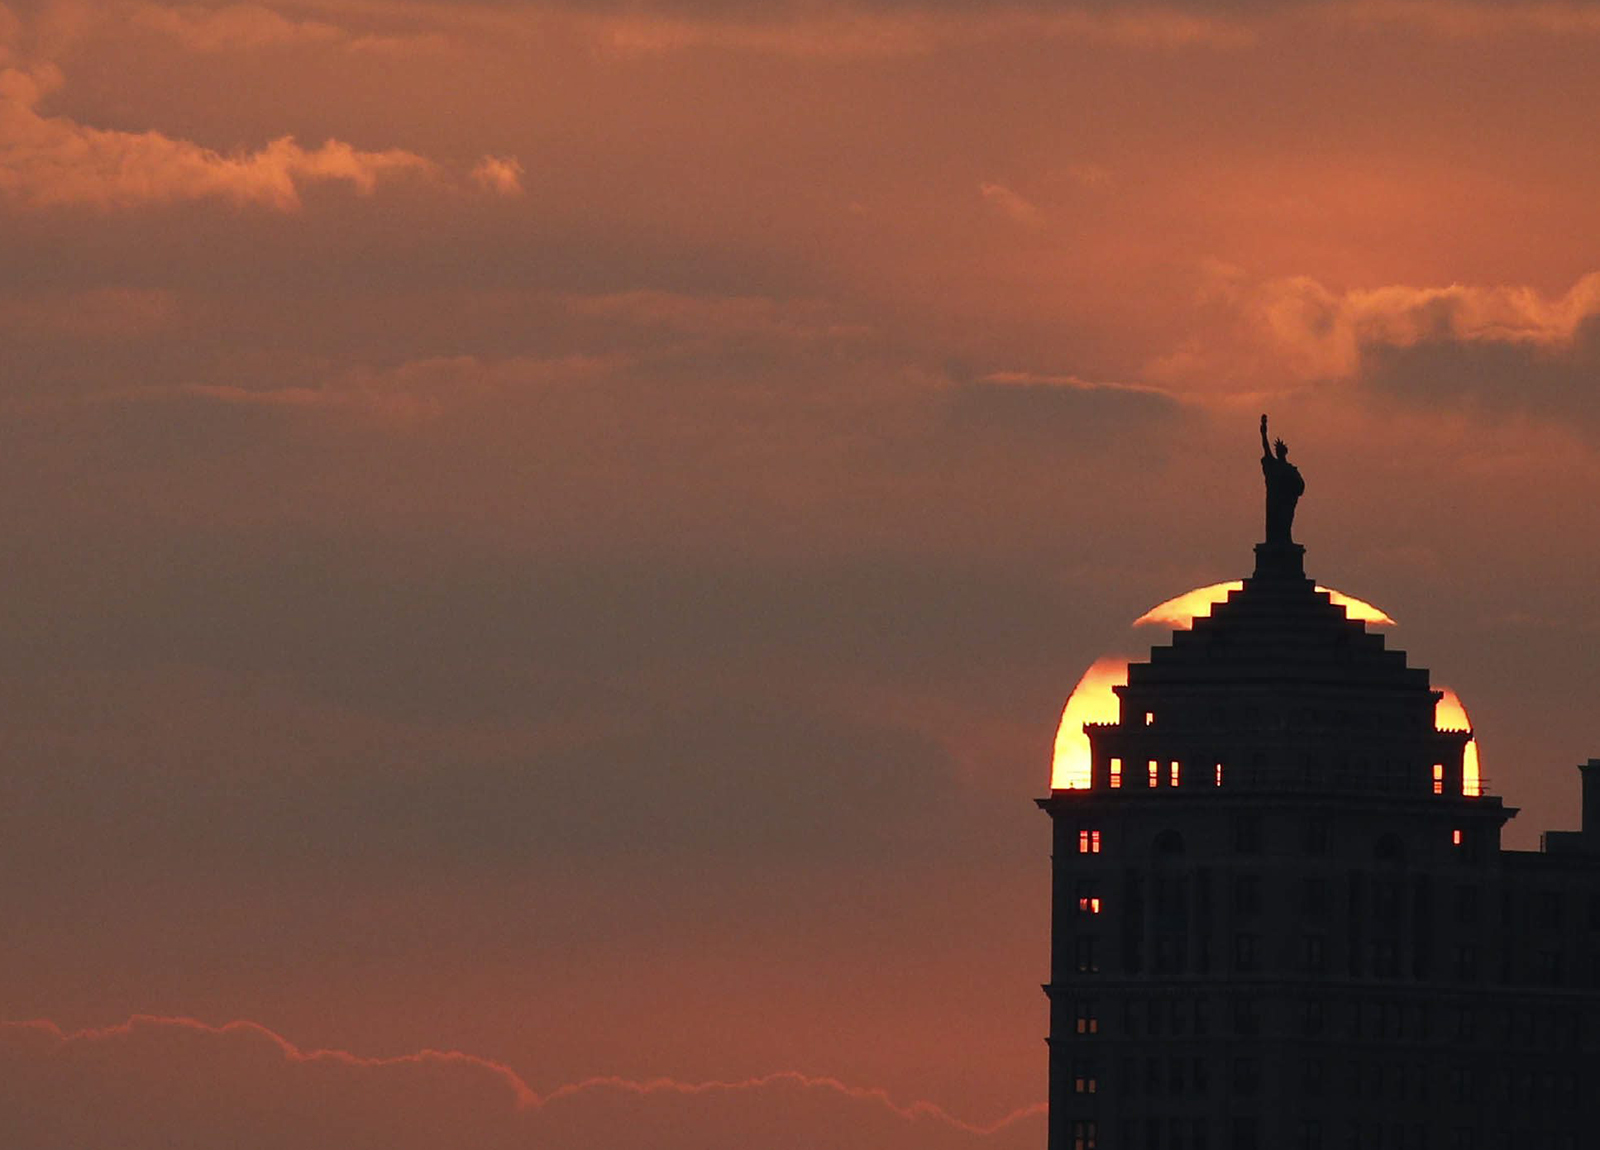 The sun rises behind the Liberty Building in Buffalo, N.Y., Wednesday, July 6, 2016.  (Photo by Derek Gee)